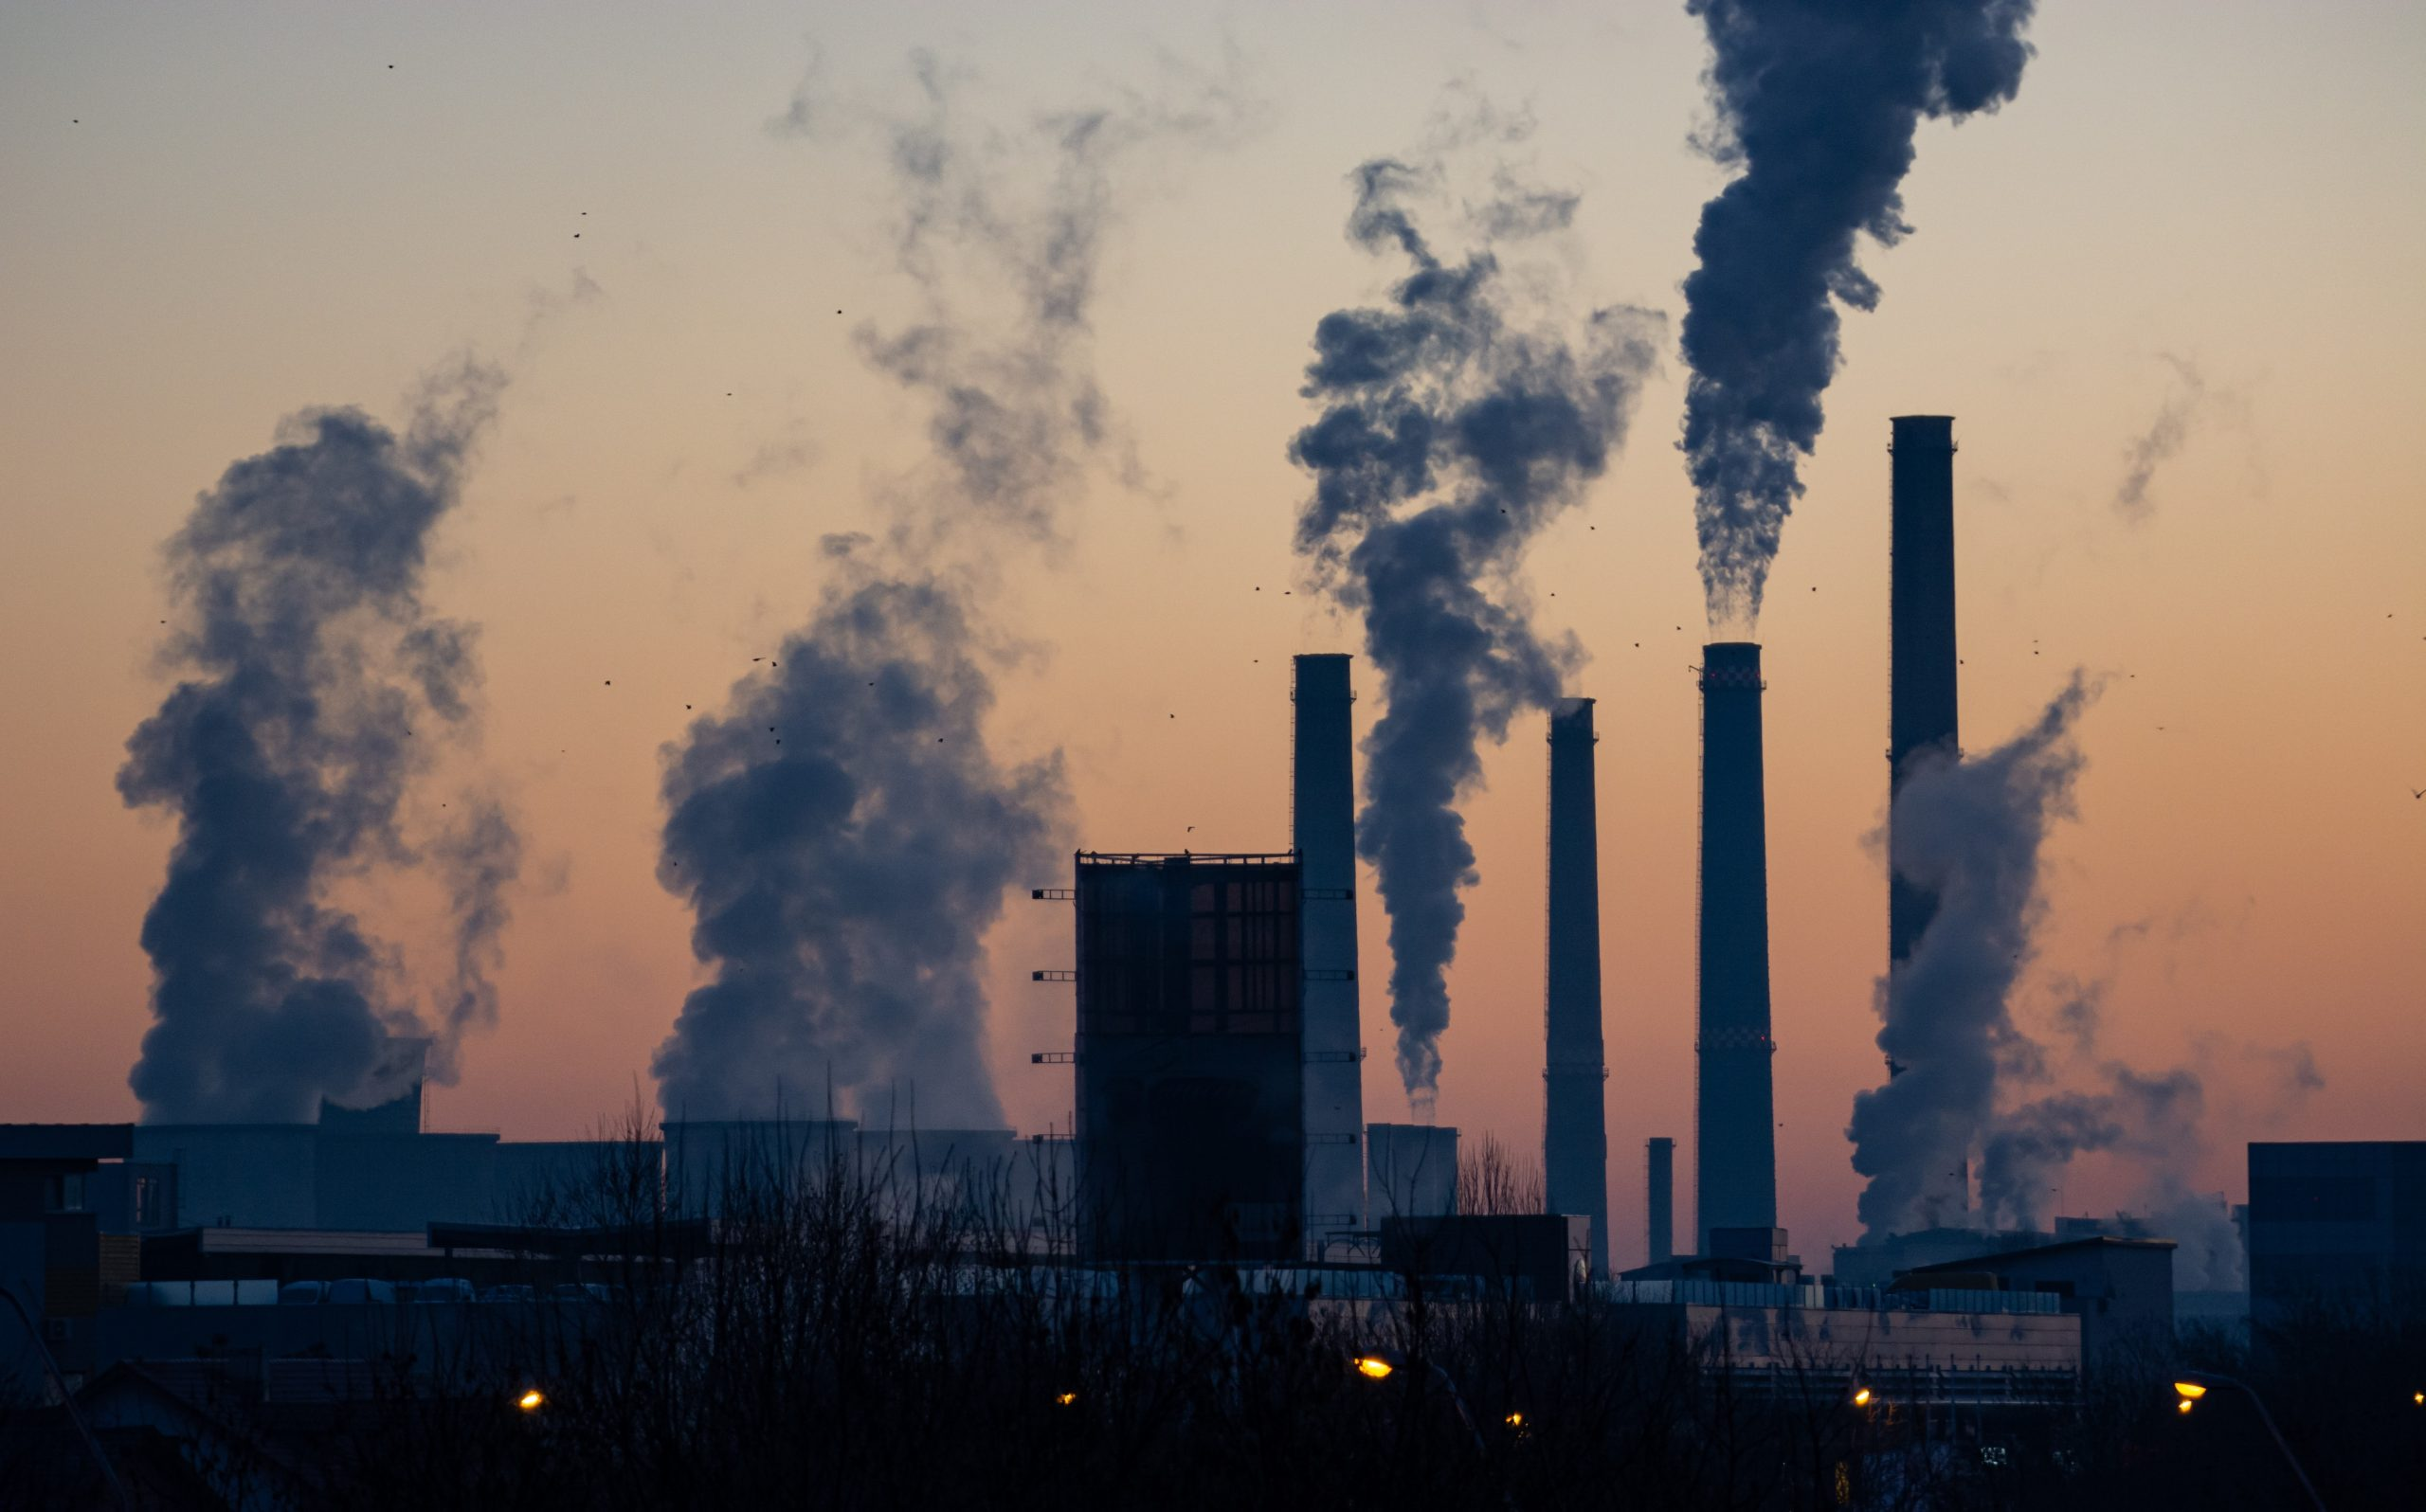 Key Technologies That Can Reduce Air Pollution in Cities